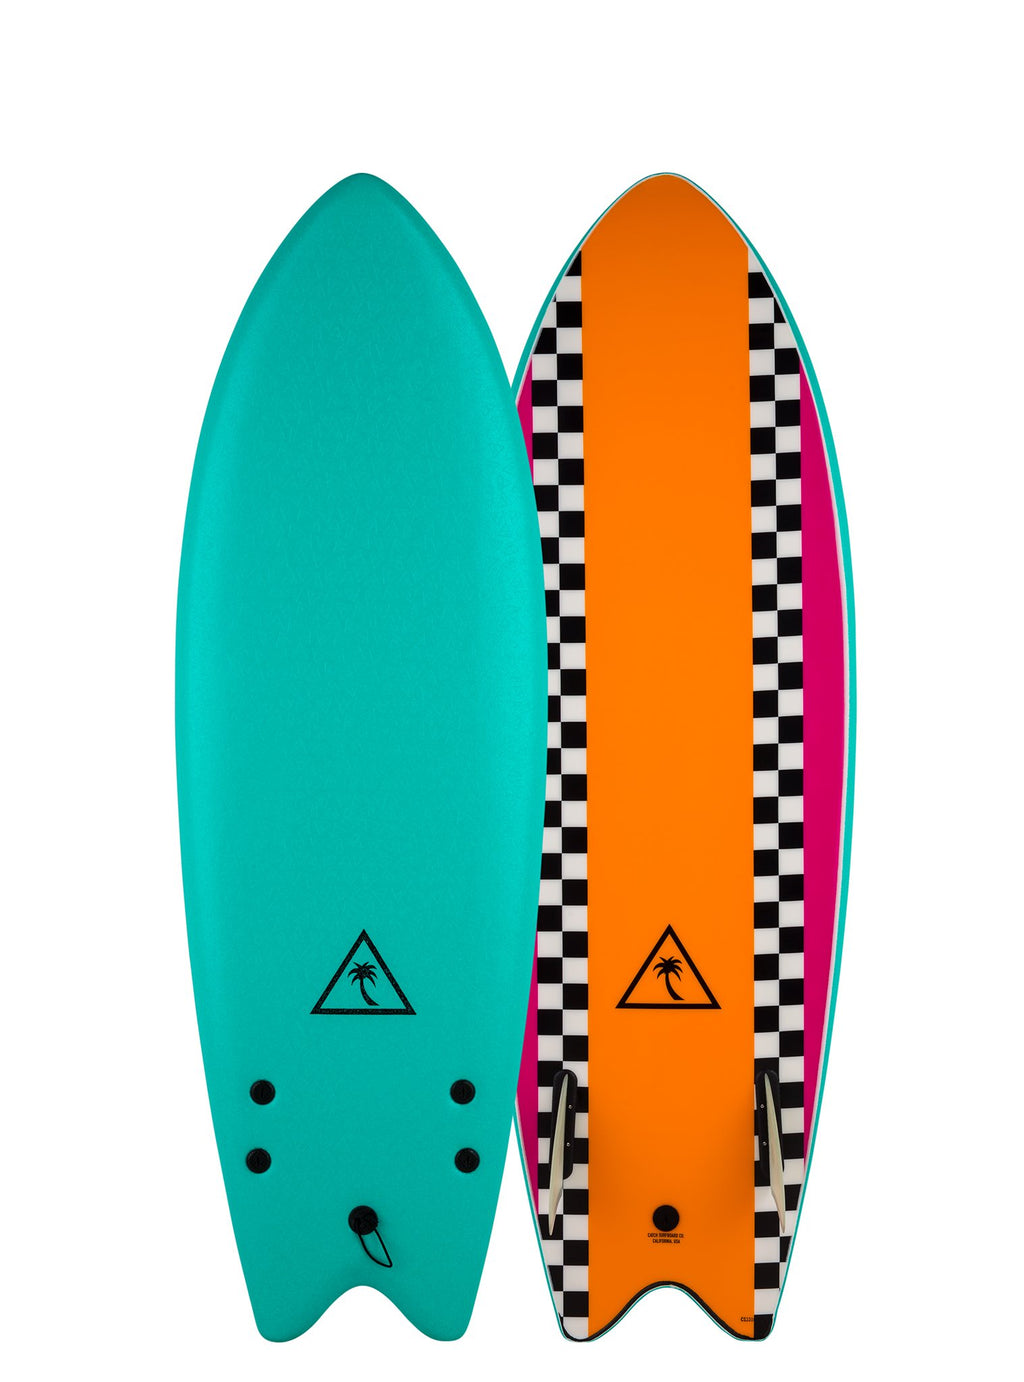 Catch Surf 5 Retro Fish - Twin IN STORE PICK UP ONLY